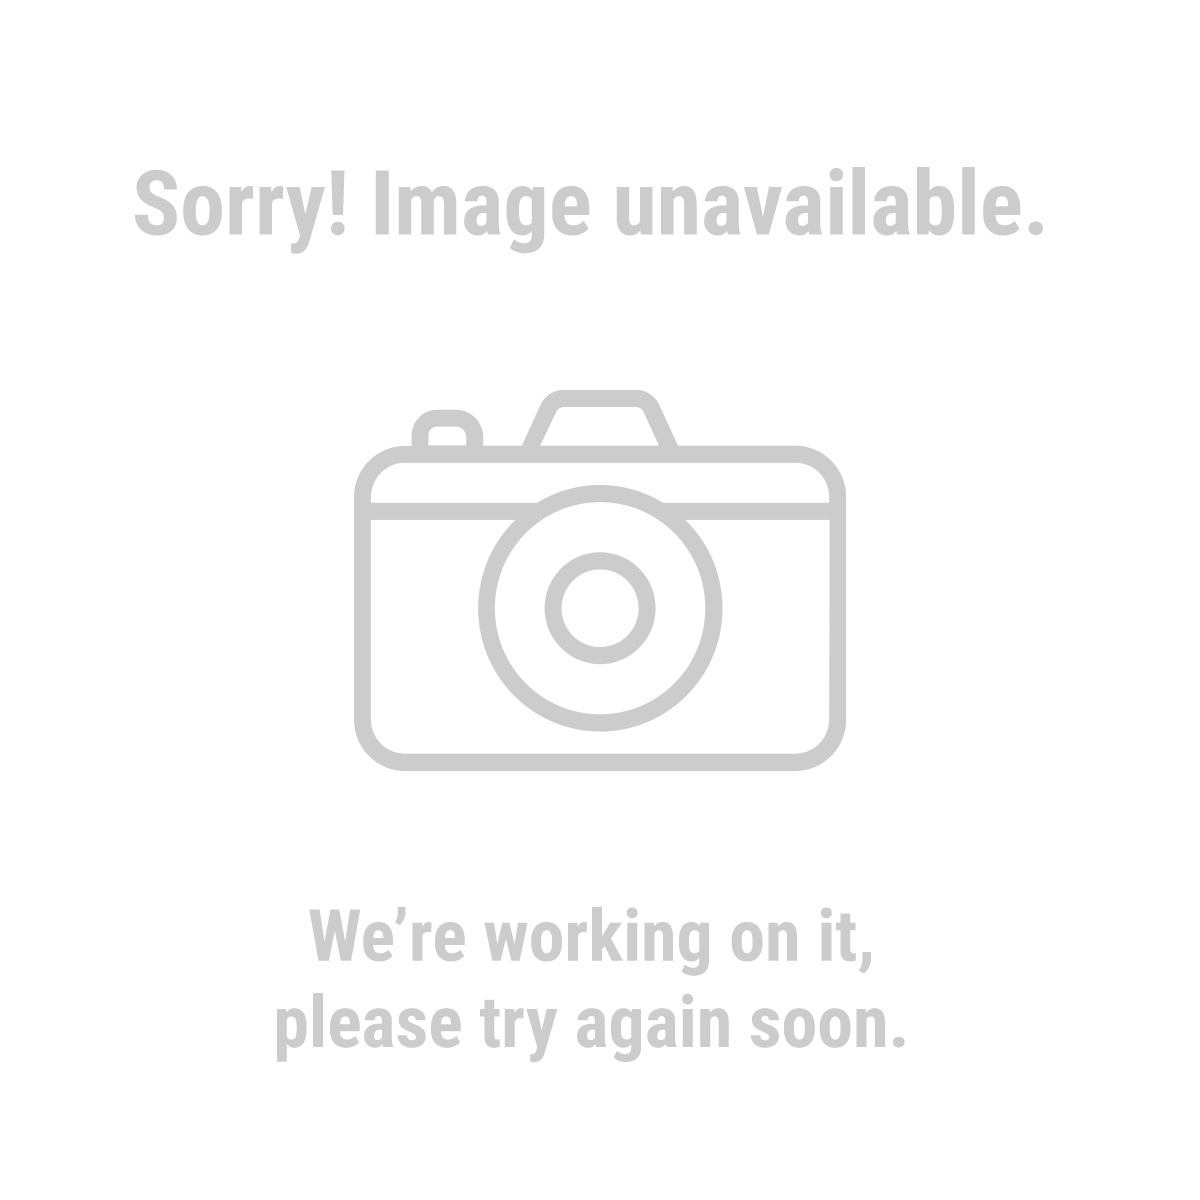 Western Safety 95584 Antivibration Gloves - Large